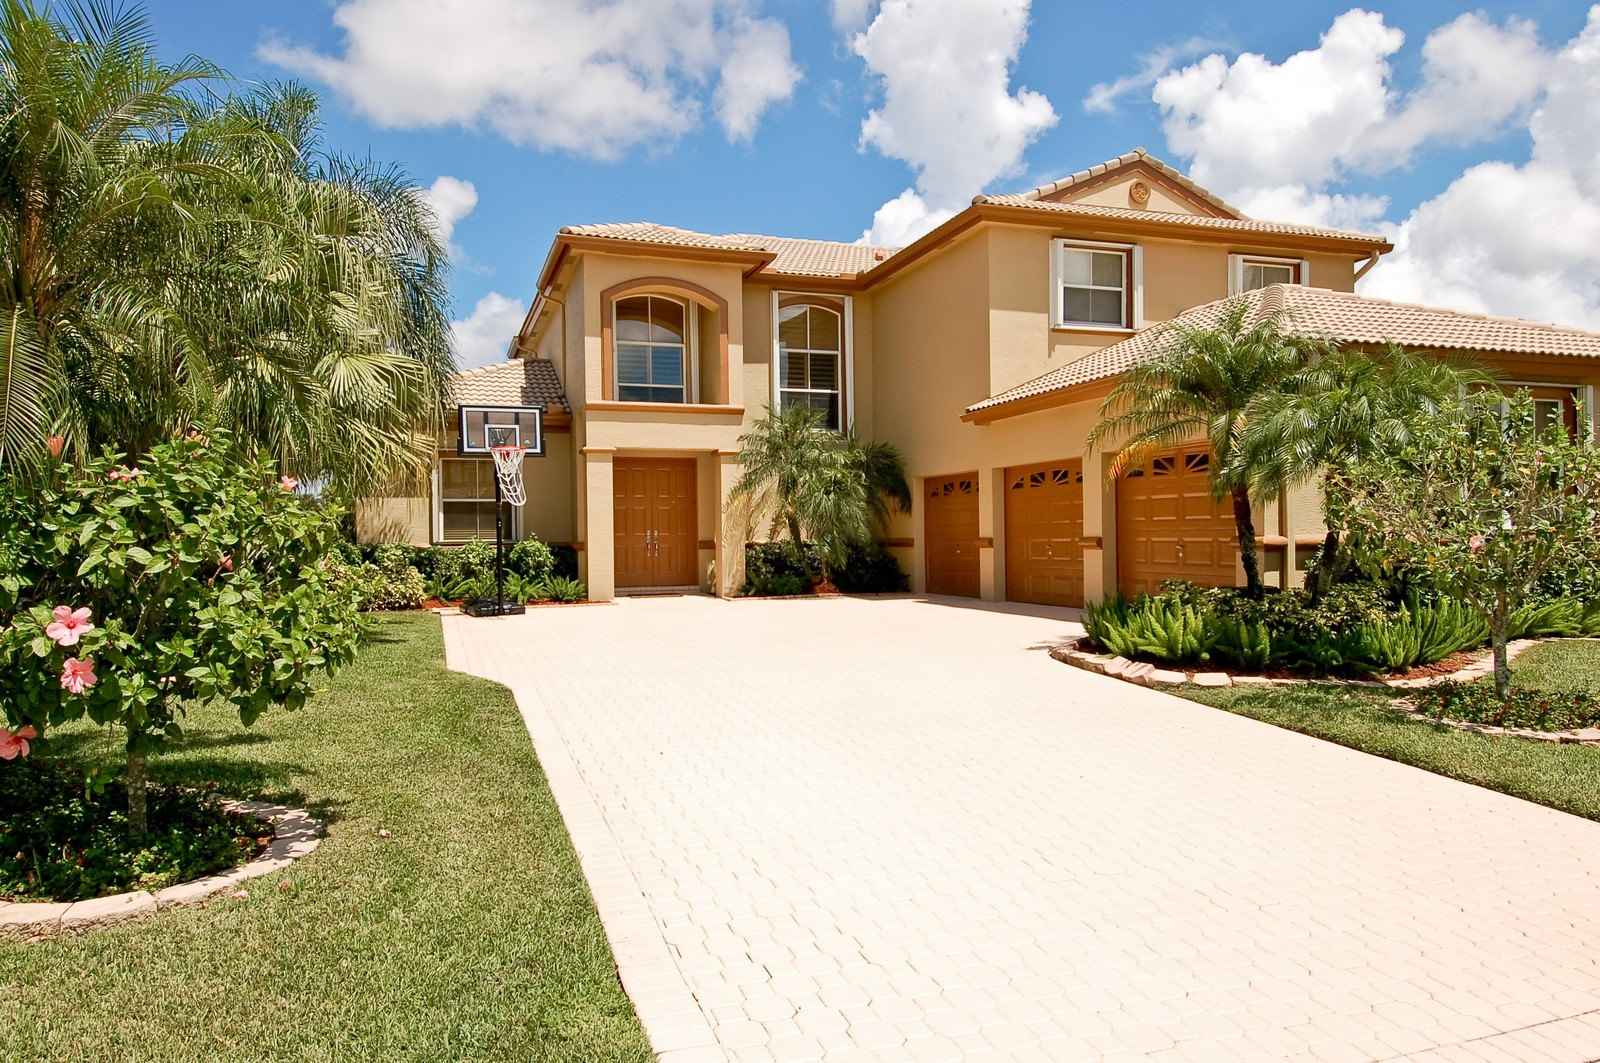 Real Estate Photography - 11308 Sea Grass Cir, Boca Raton, FL, 33498 - Front View